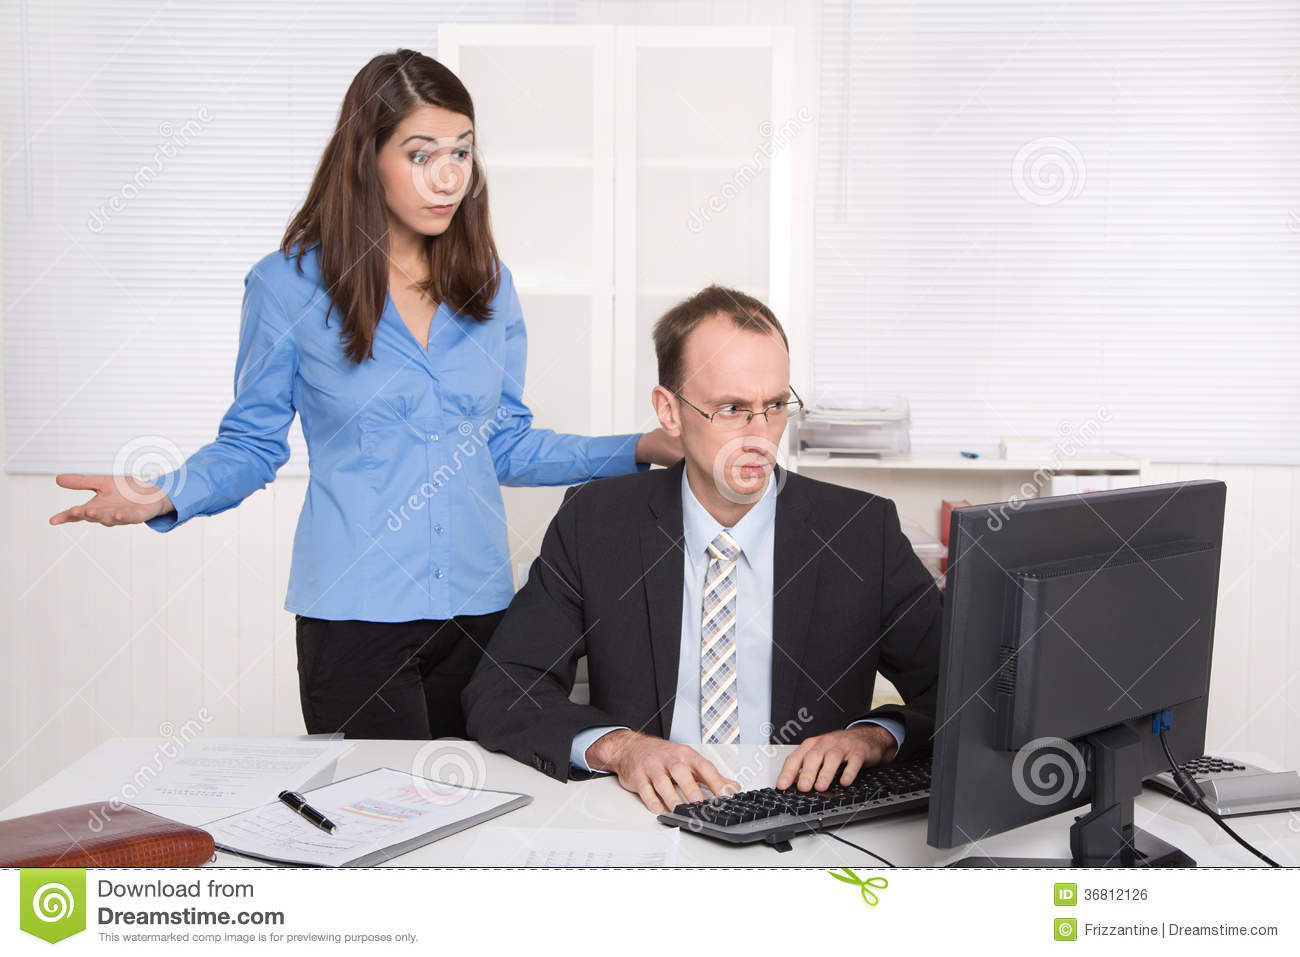 Two businesspeople in the office - discussion or bullying at work